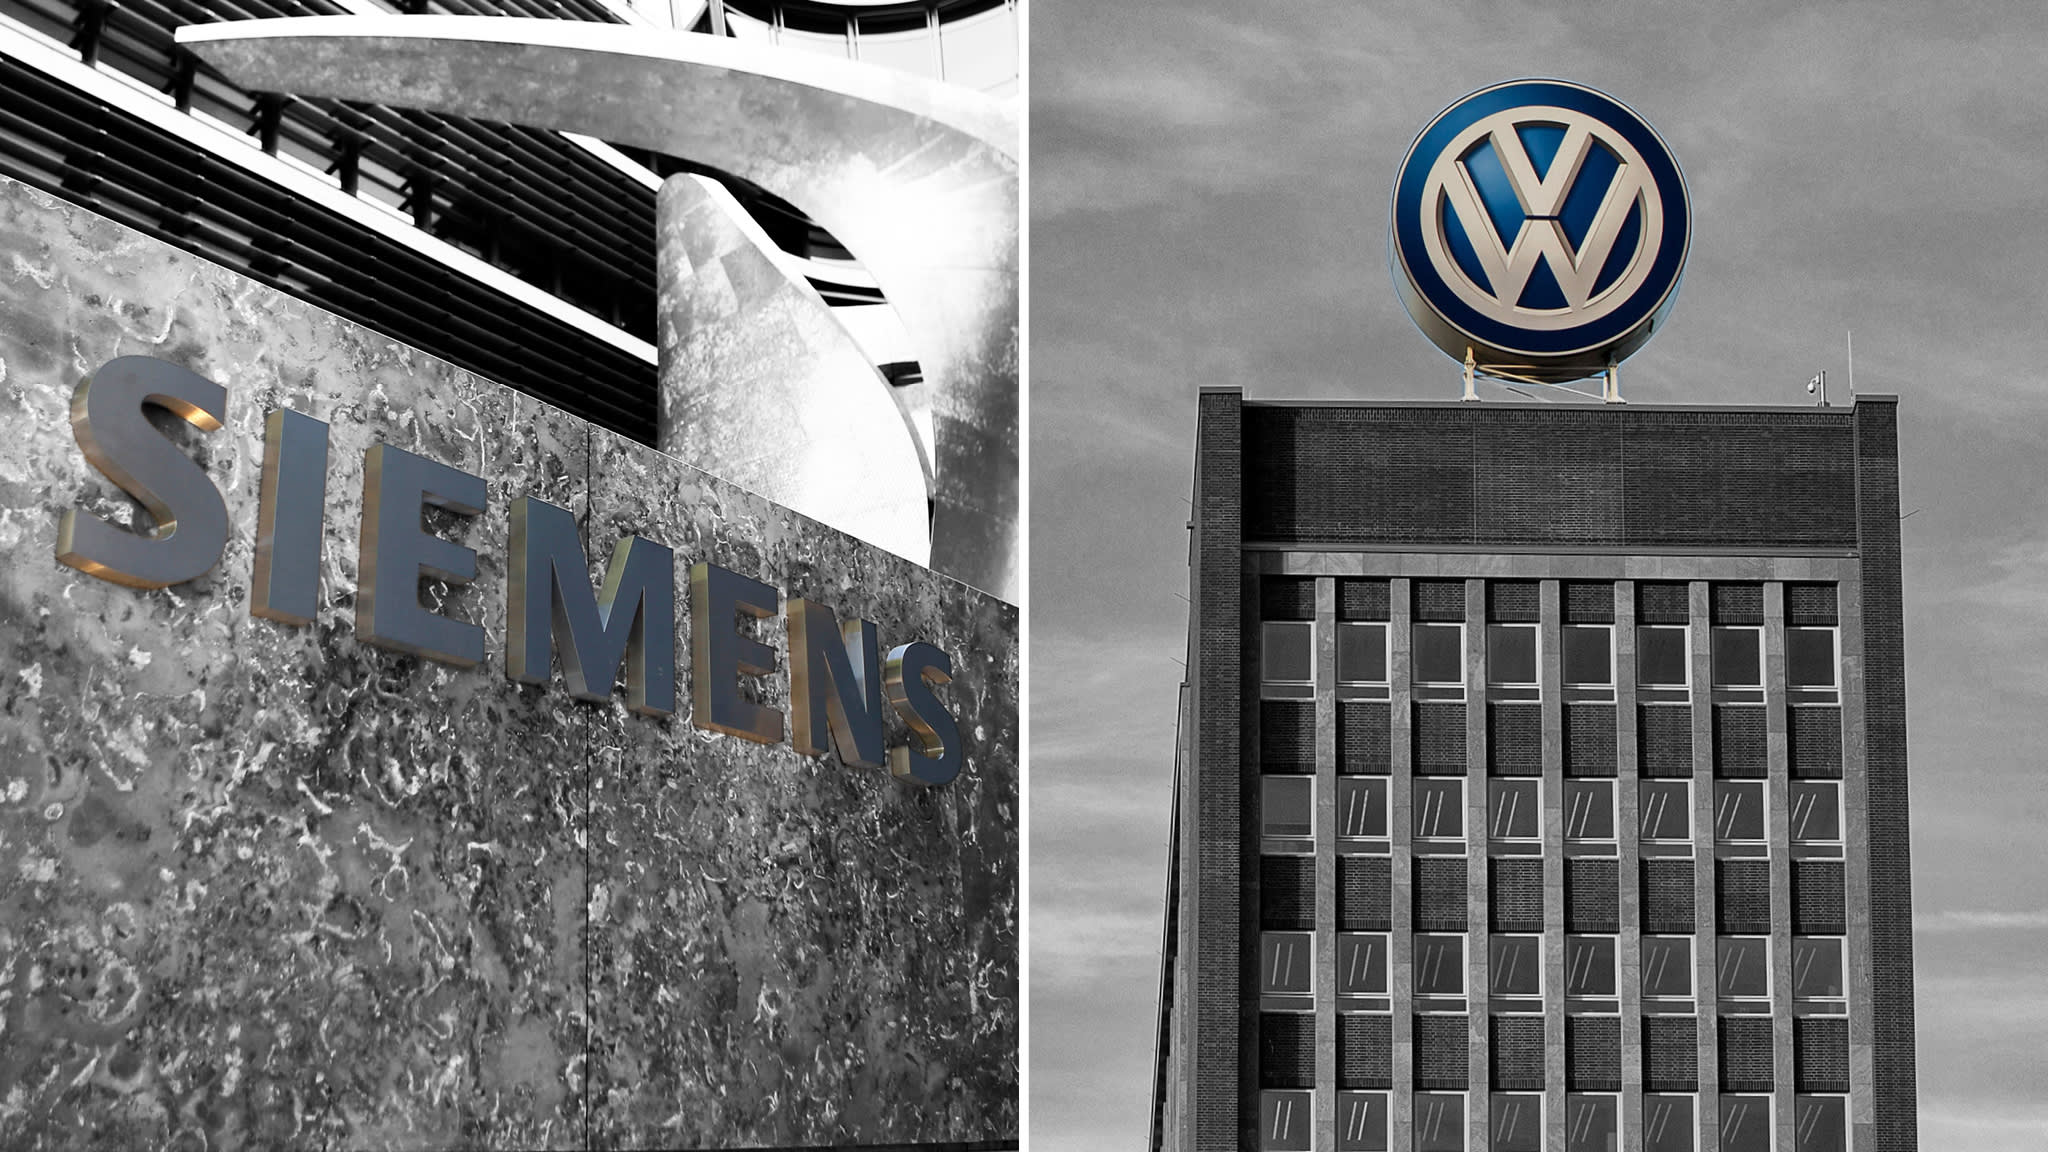 Volkswagen's governance reforms fail to impress